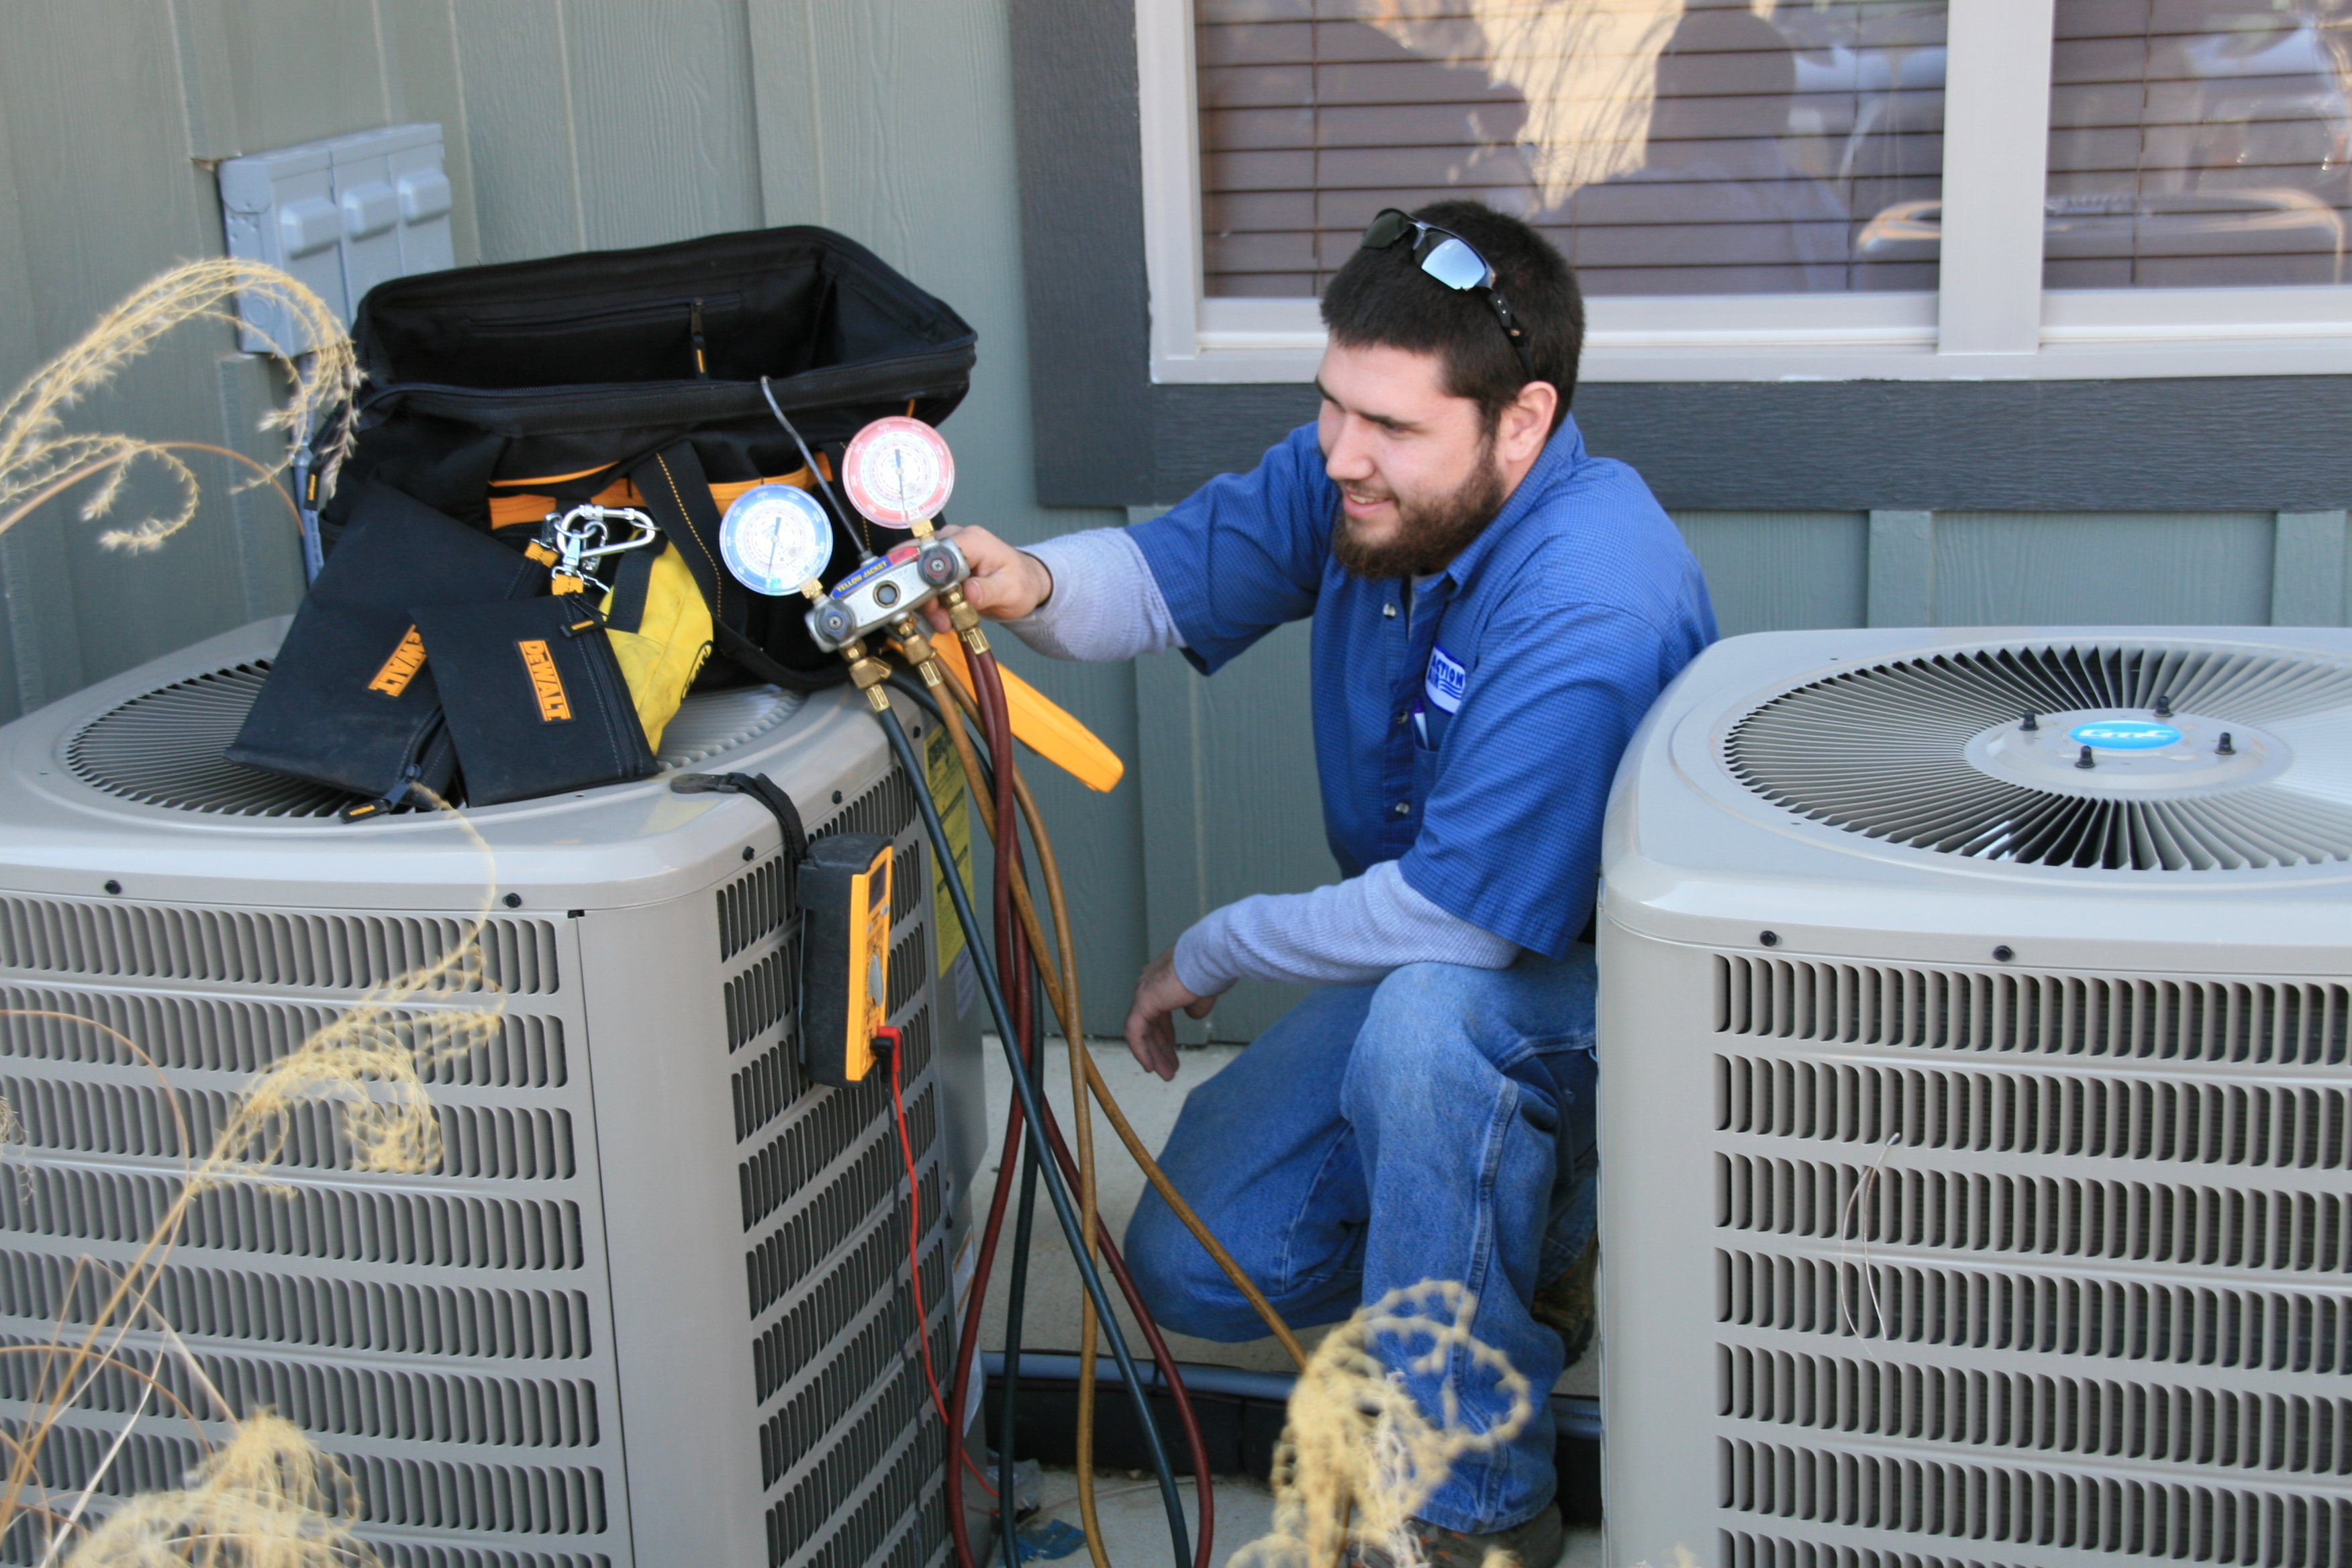 air conditioning service in west palm beach | west palm beach air